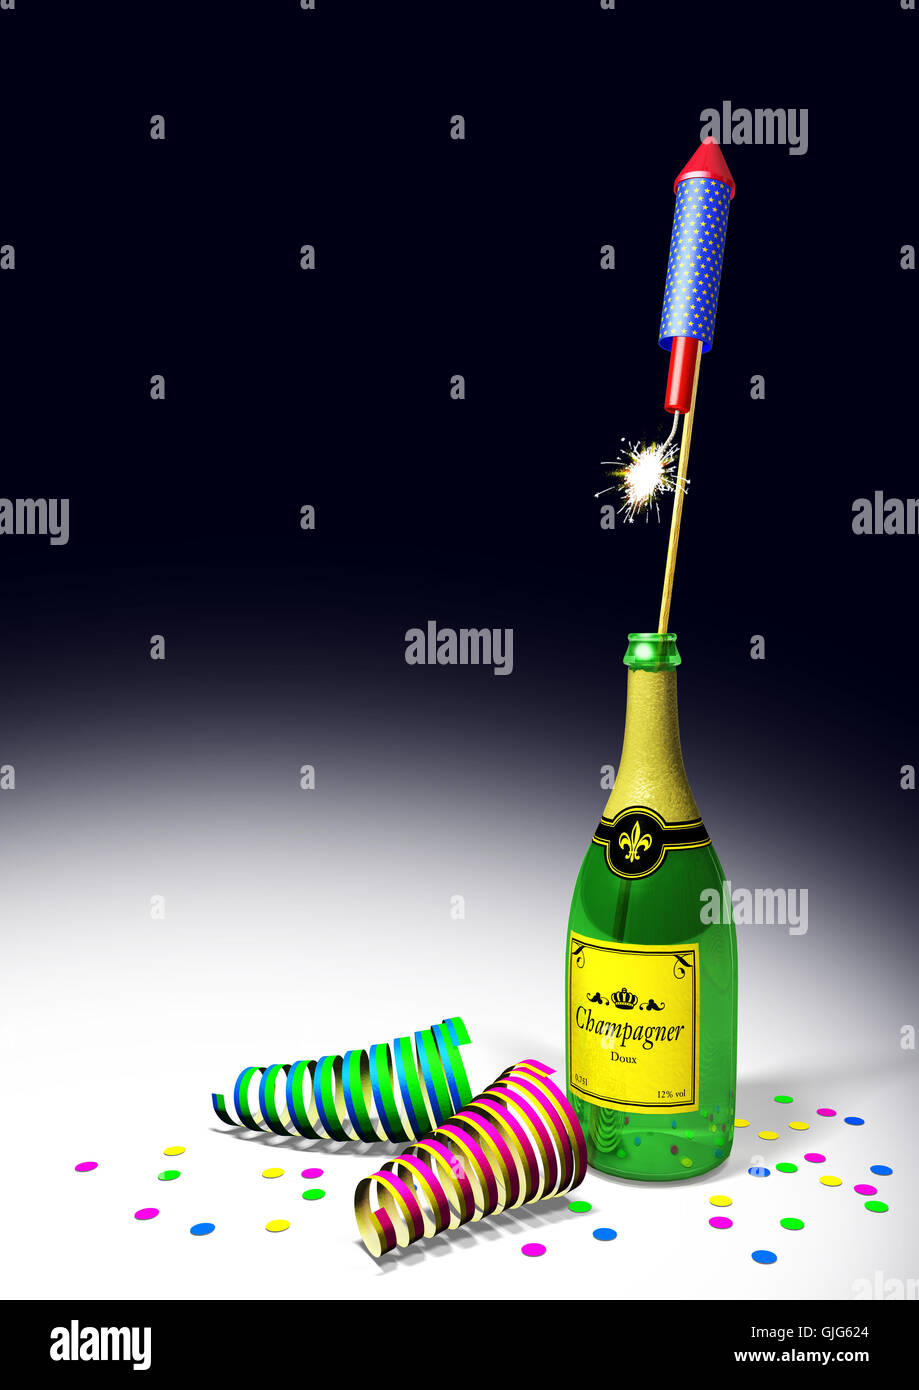 rocket champagne bottle Stock Photo